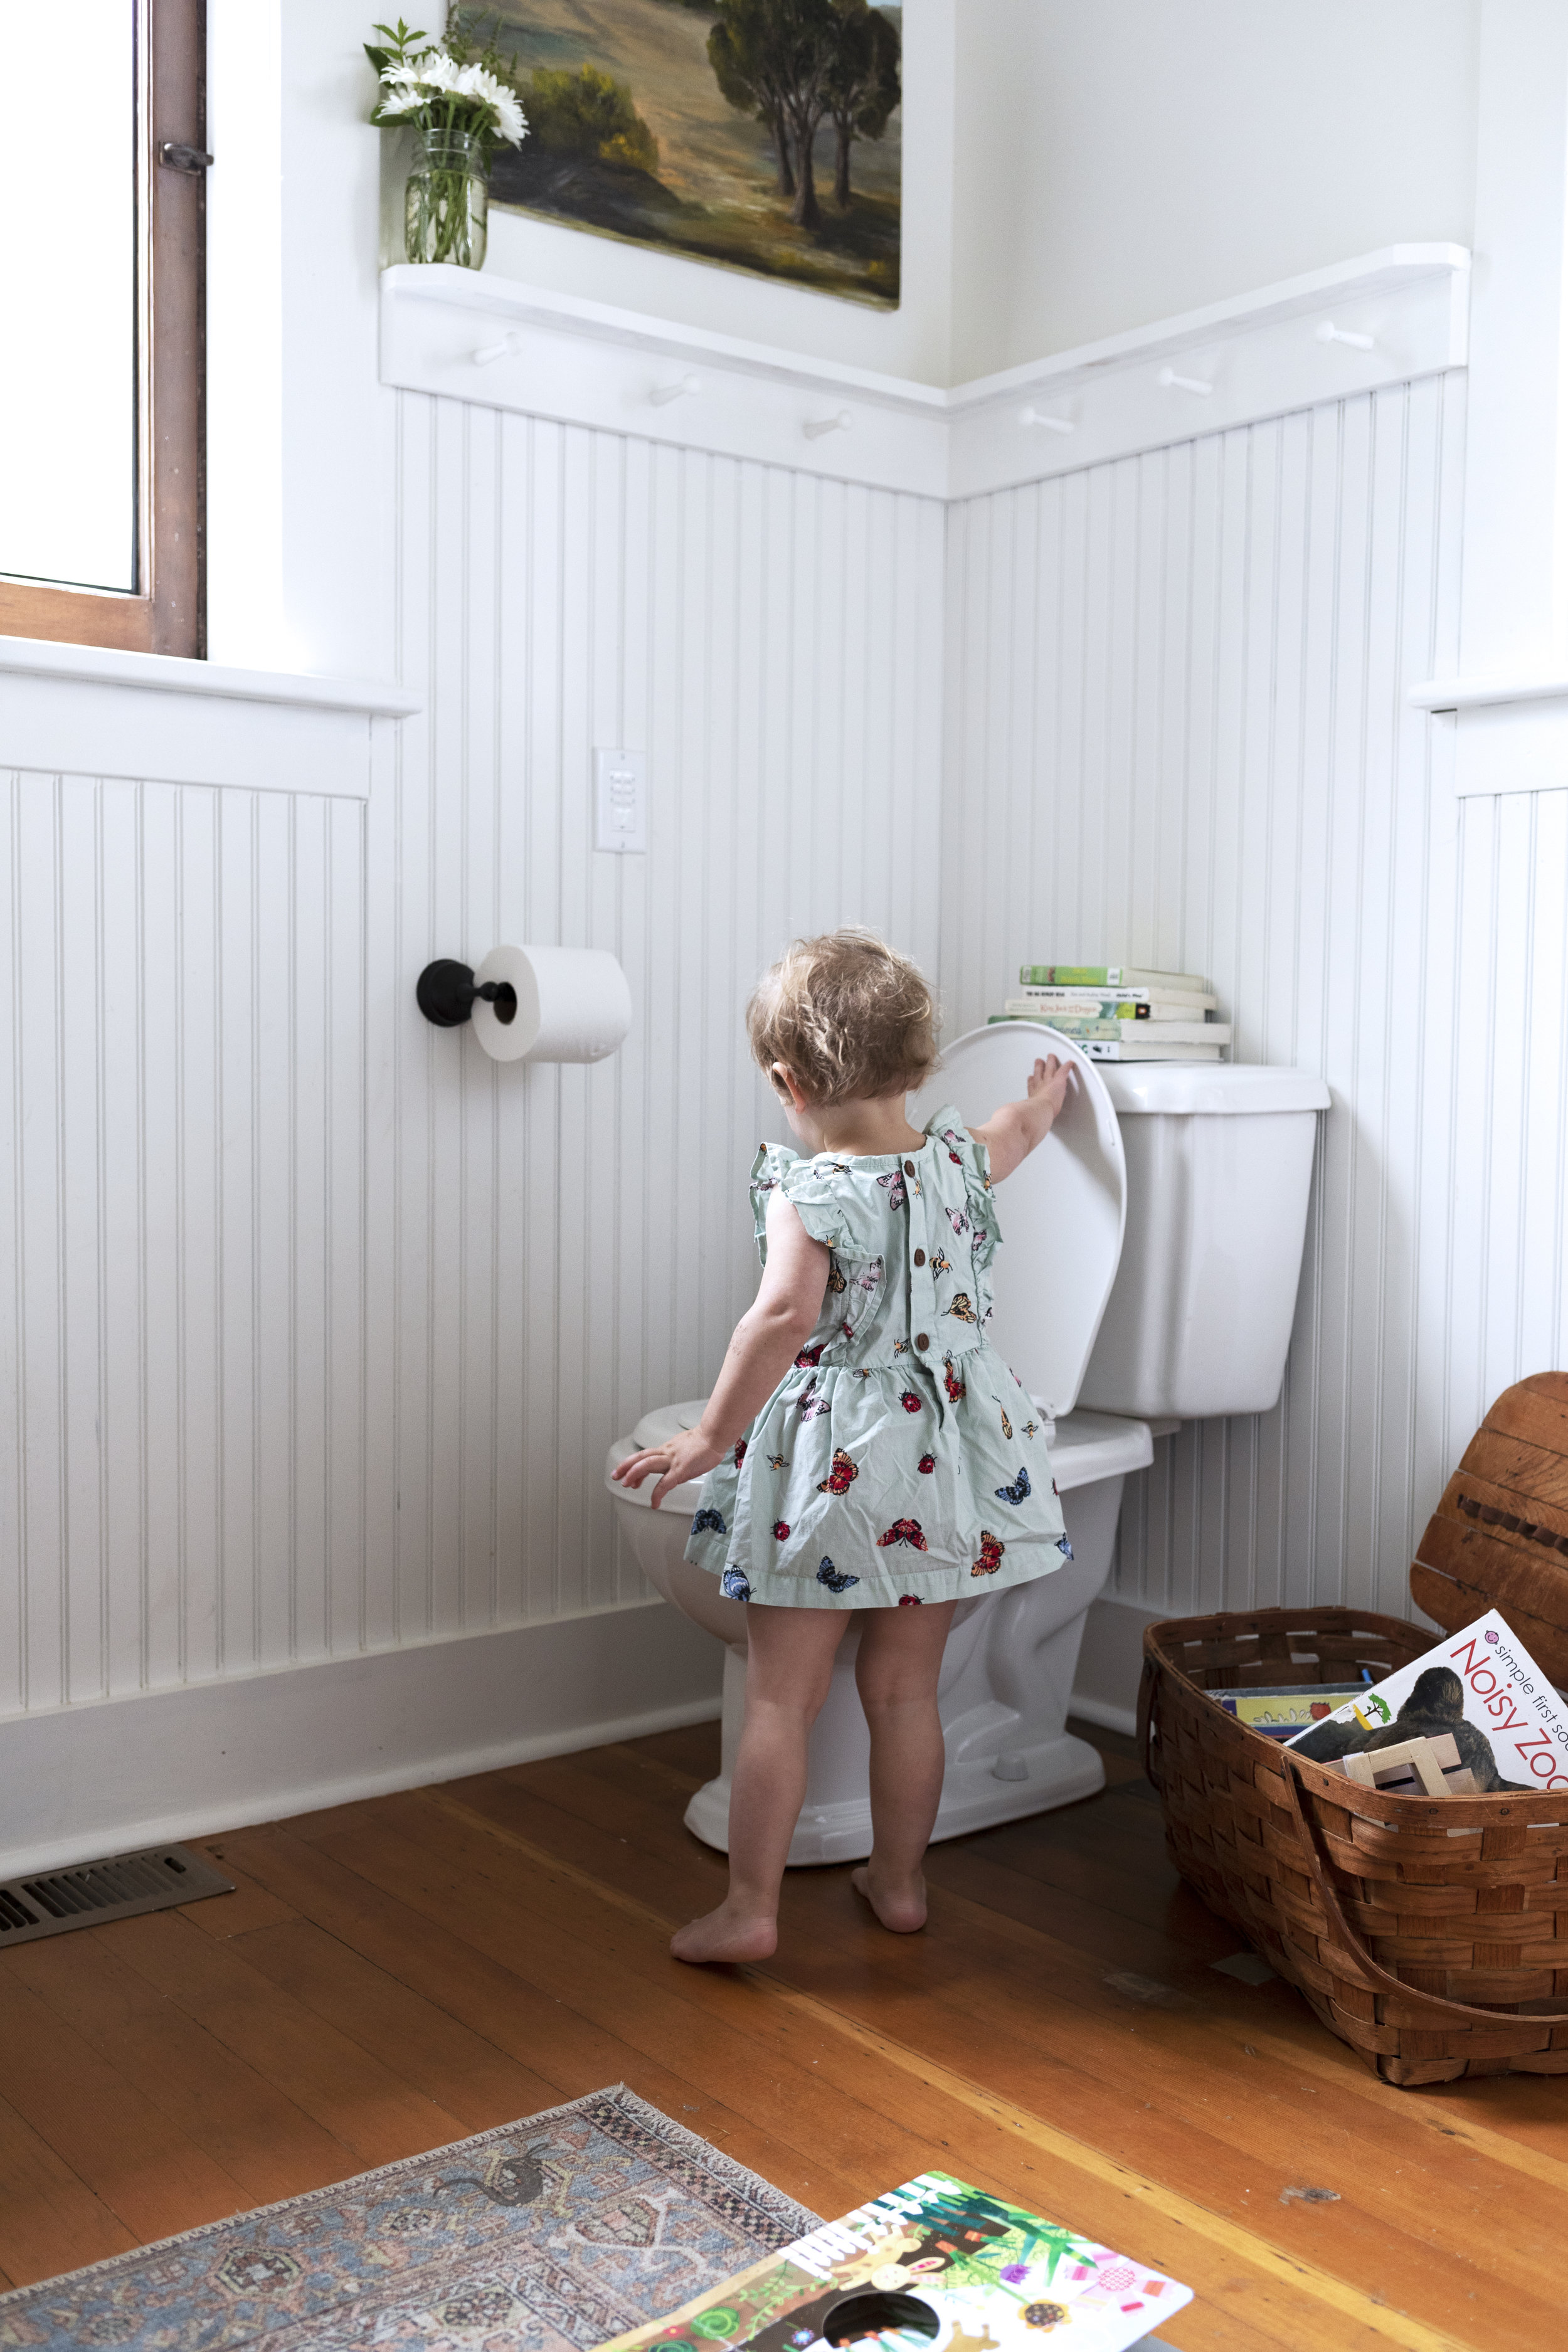 The Grit and Polish - Farmhouse Bathroom Potty Training D 6.jpg